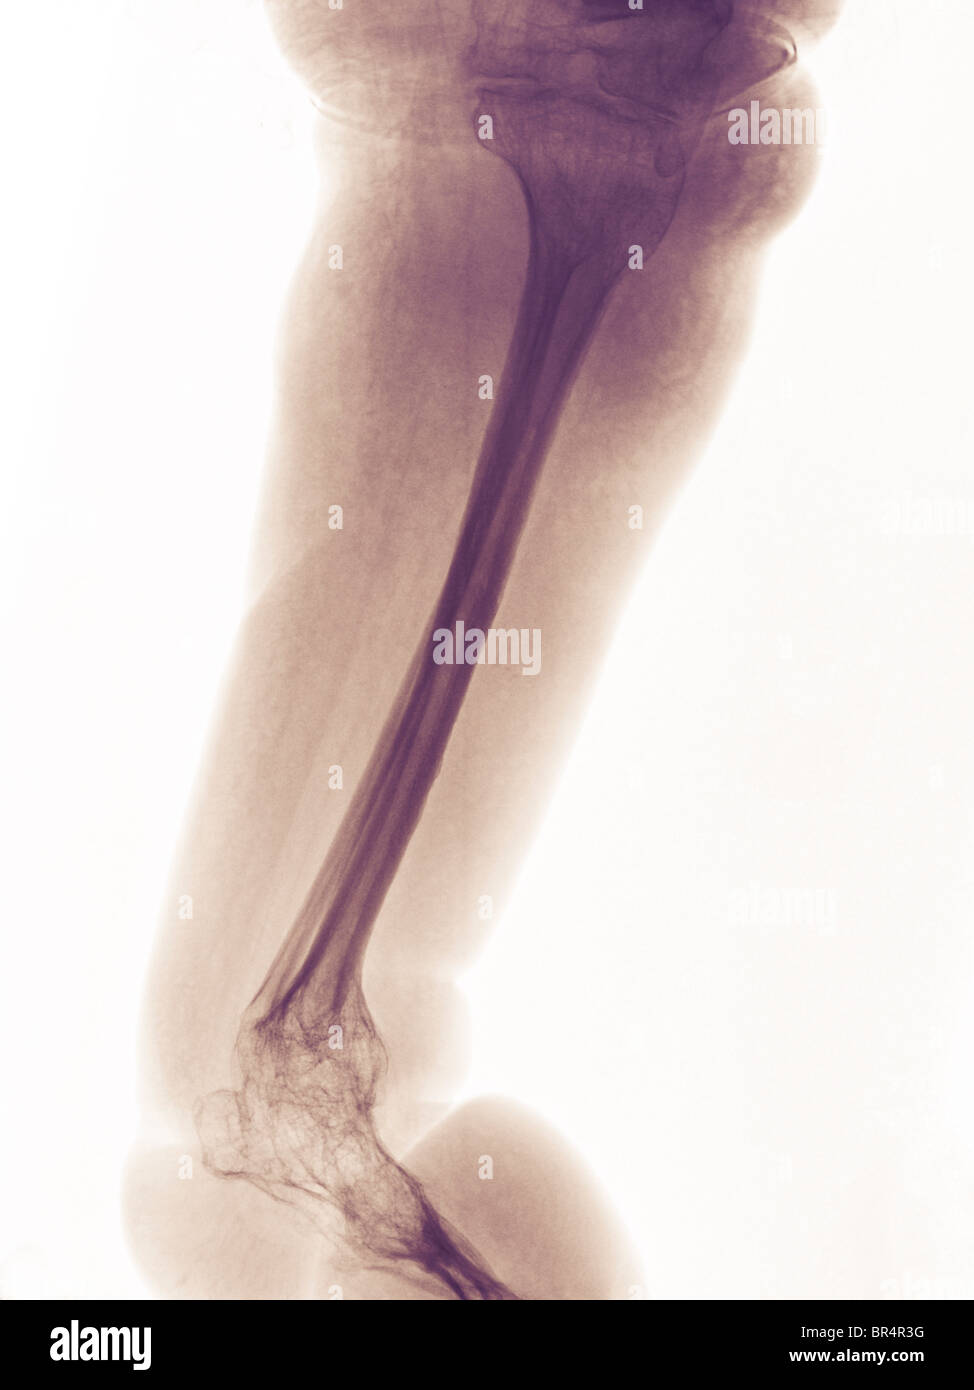 leg and foot x-ray of a 63 year old man with paraplegia and extensive degenerative changes and osteopenia - Stock Image